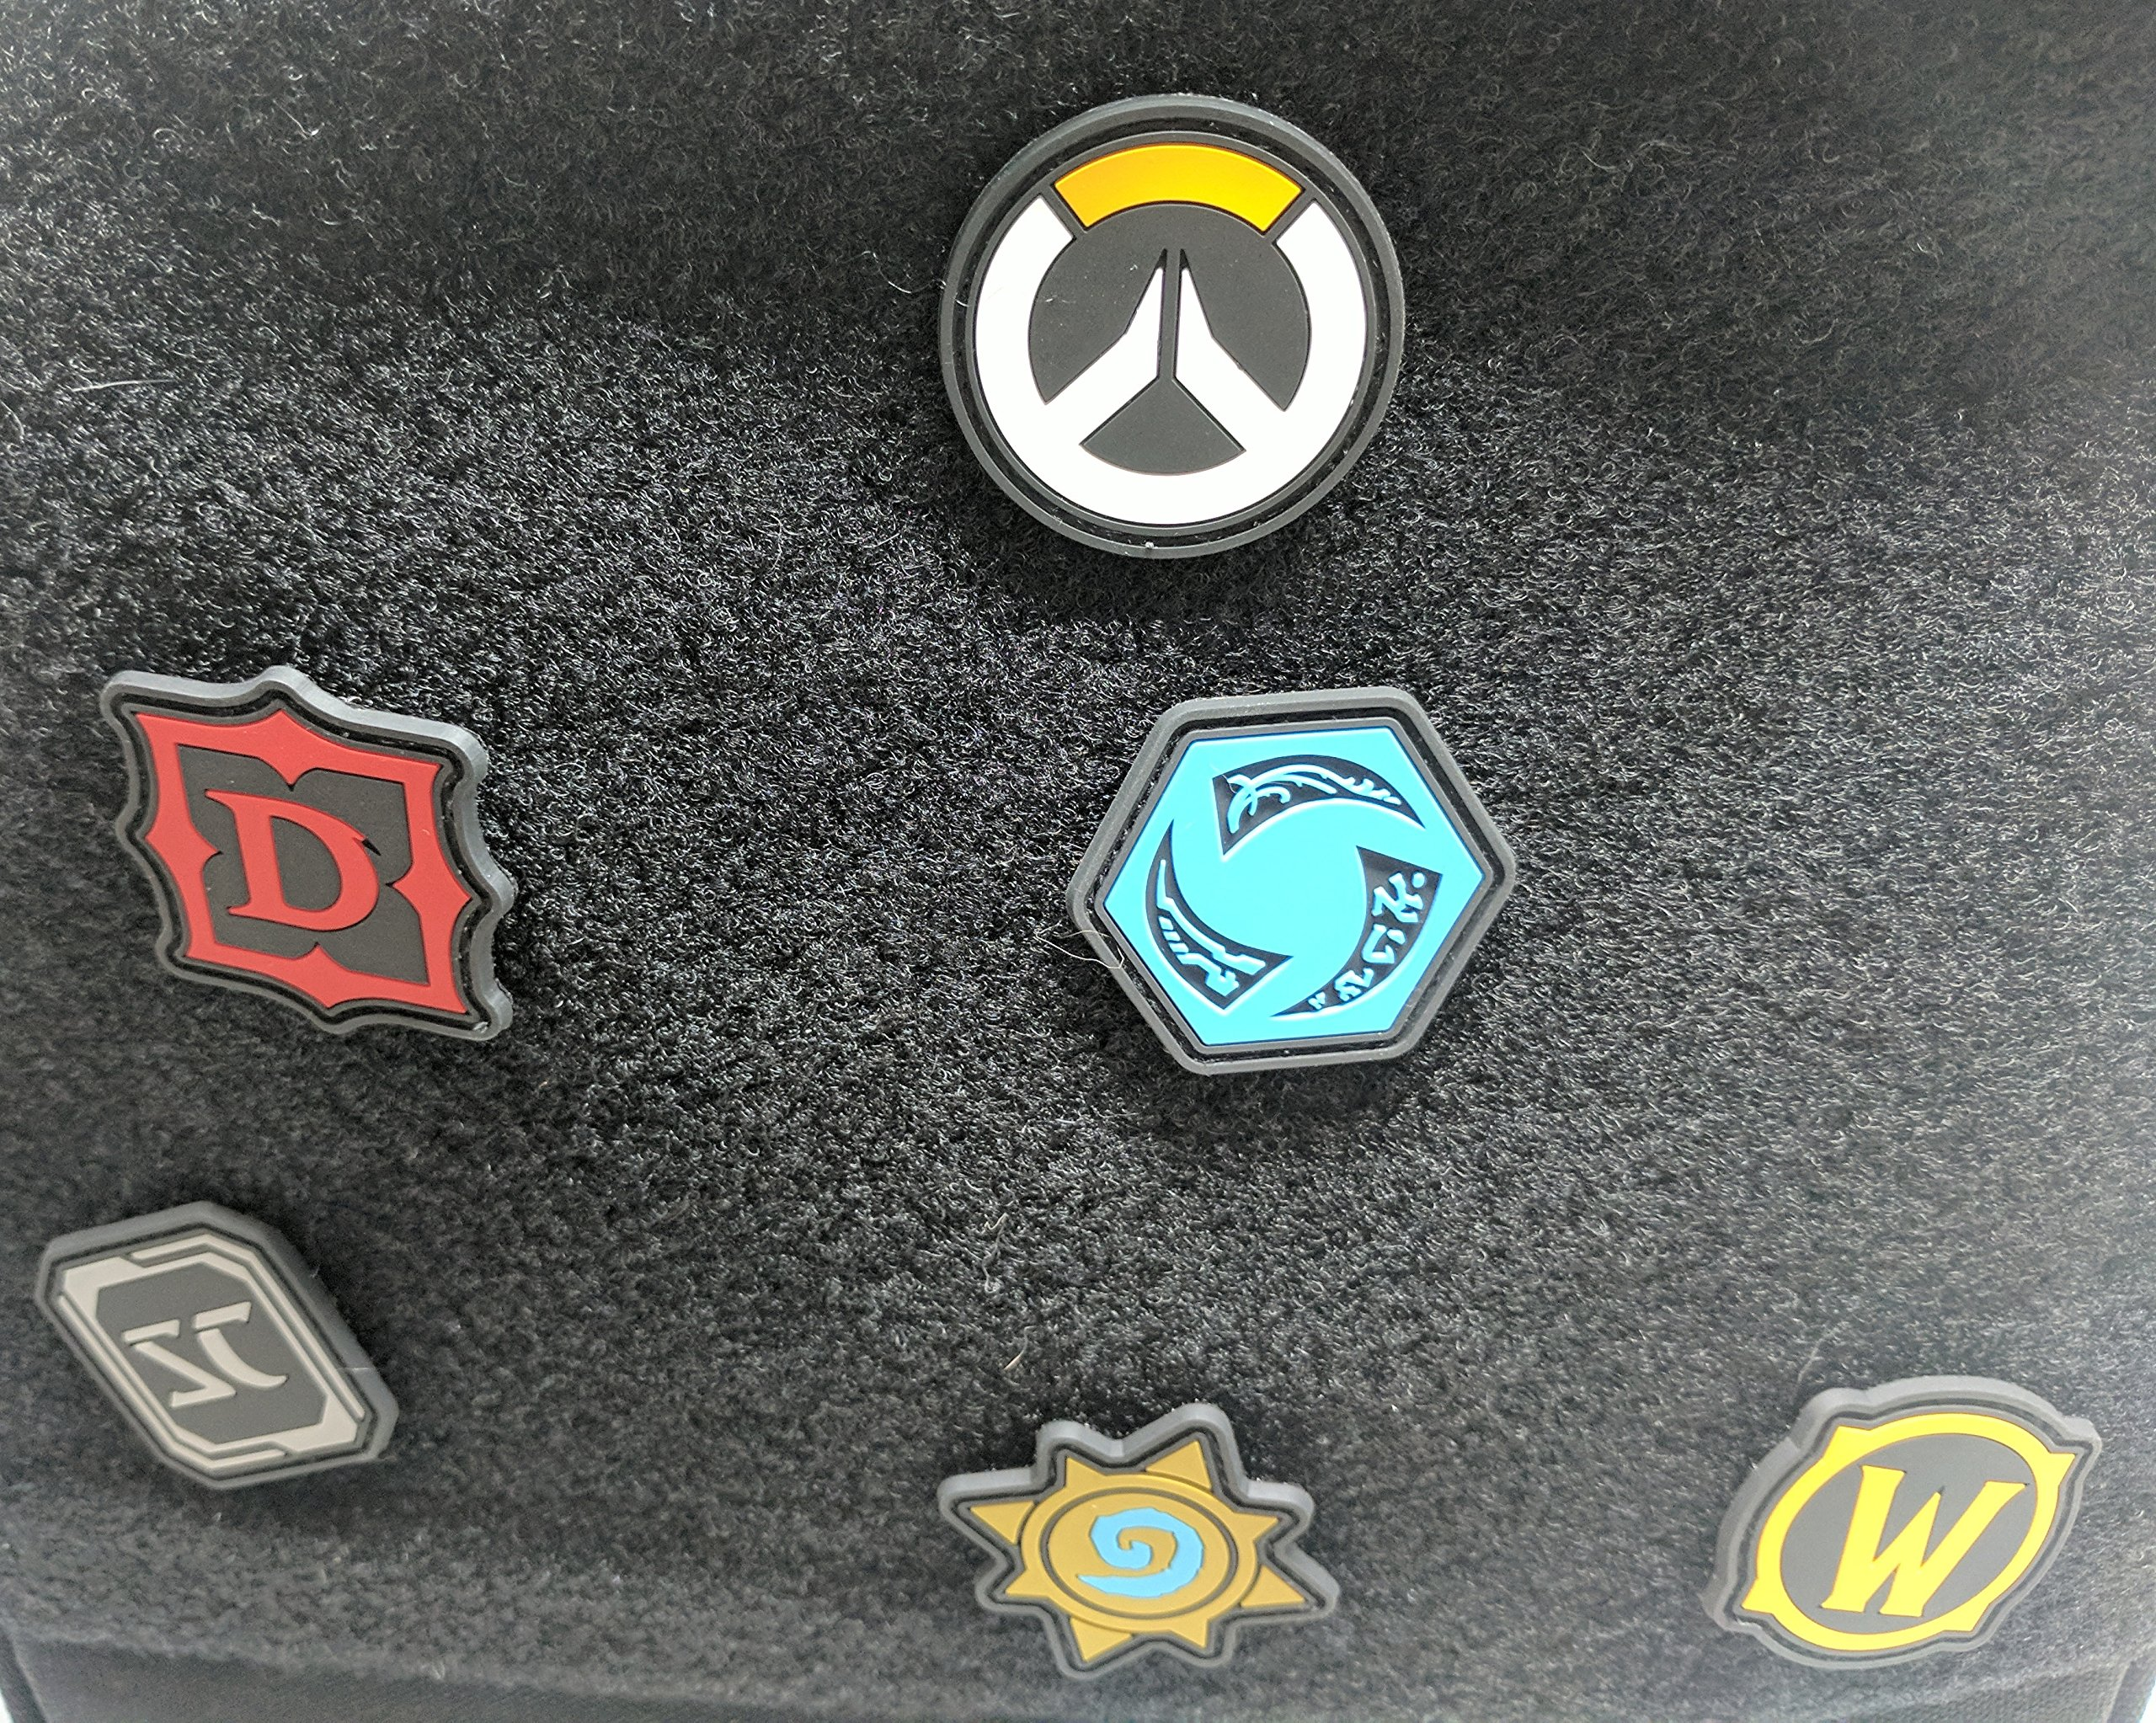 Blizzcon Goody Bag Backpack | Limited Edition Exclusive (2017) by Overwatch (Image #5)